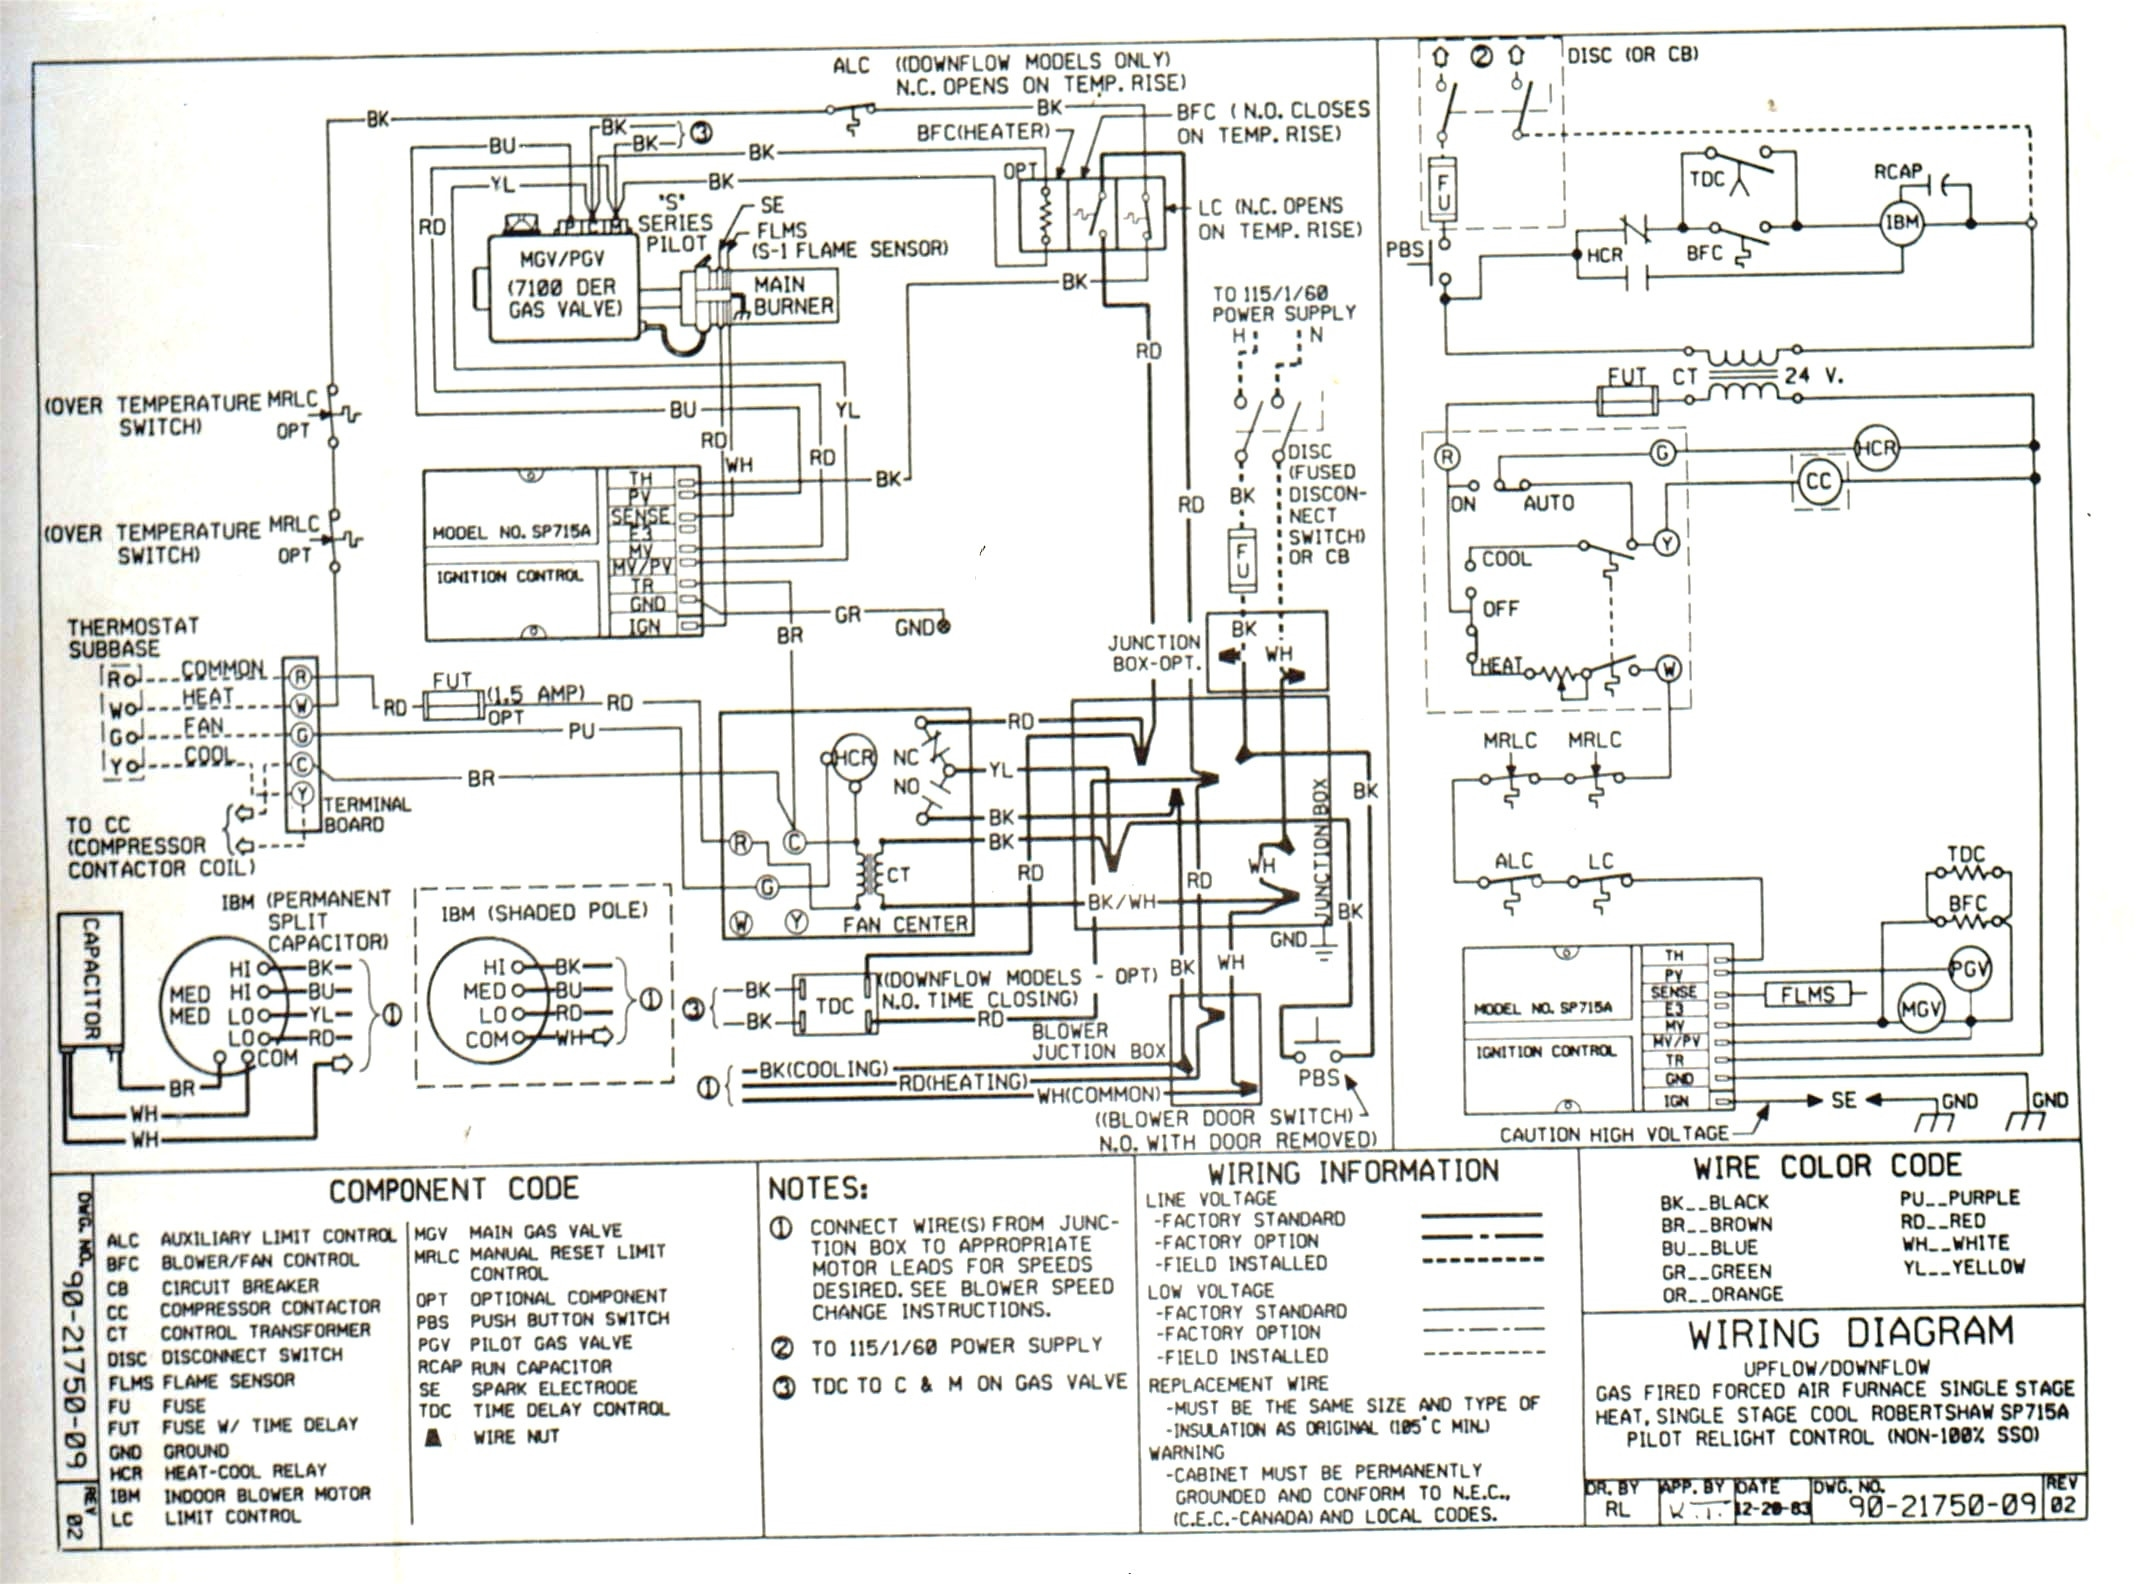 york heat pump wiring diagram Collection-Wiring Diagram for York Heat Pump Inspirationa Hid Wiring Diagram with Relay and Capacitor Best Inspiration 19-m